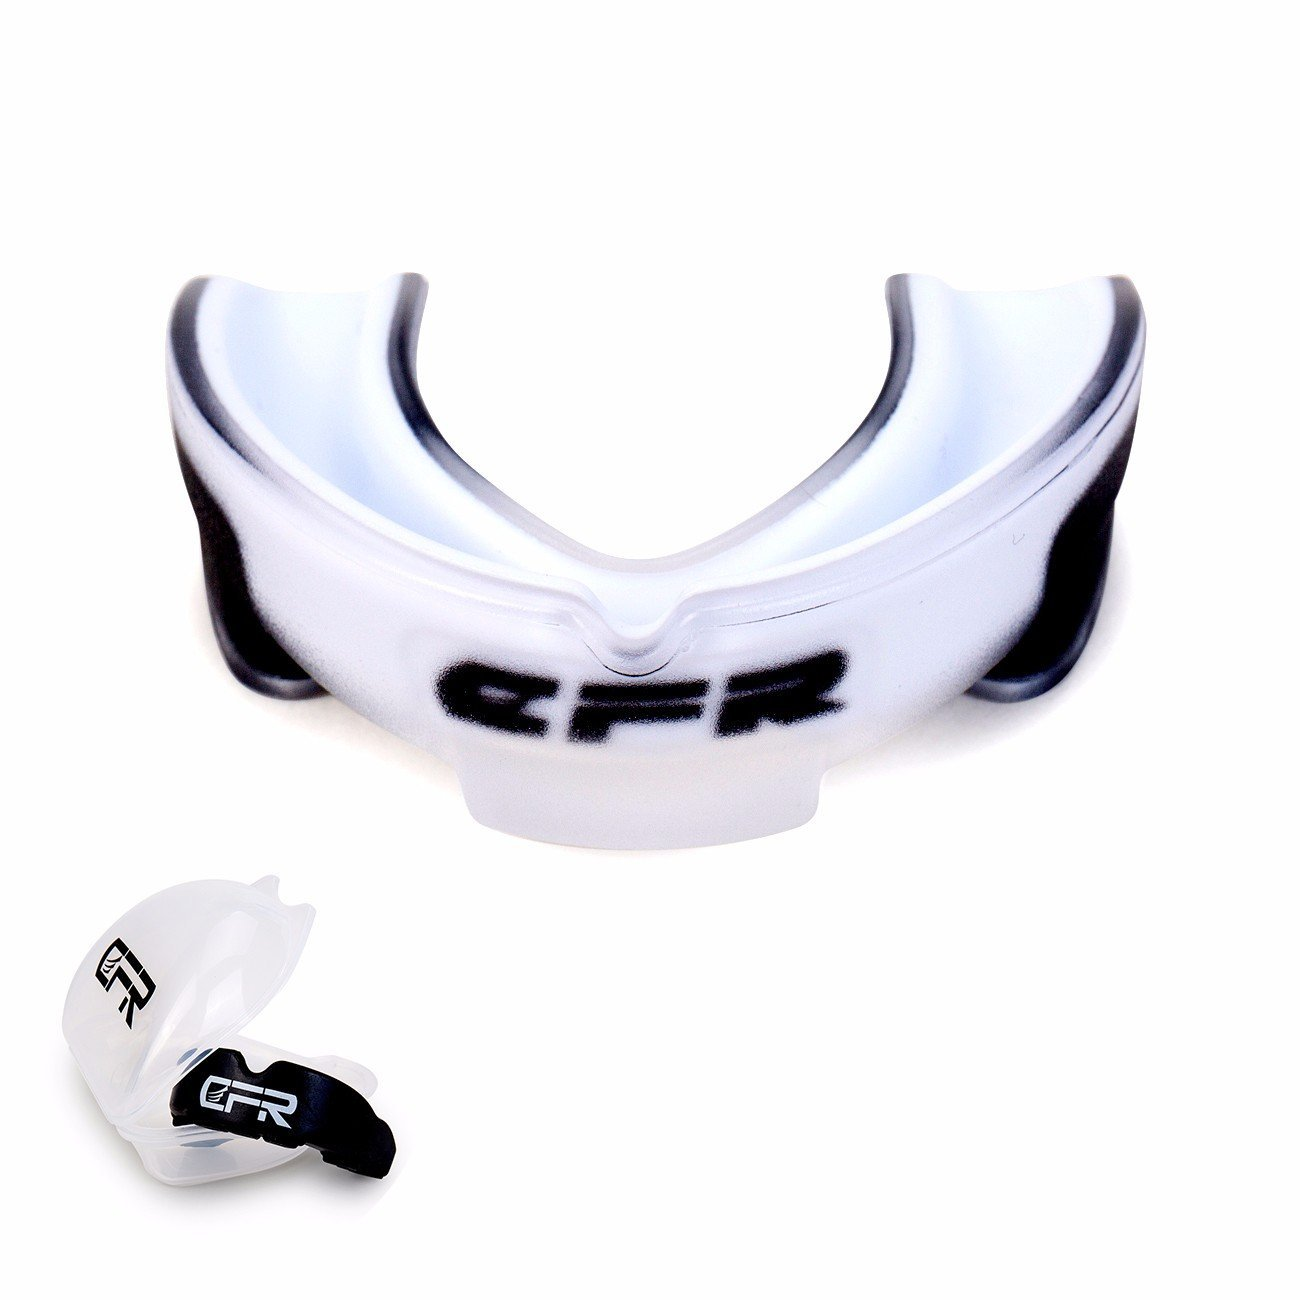 Fittoo Mouthguard Gumshield Dental Armor Sport Mouth Guard Double-Layered Fit Any Size Mouth Breathable Air Channel Stylish Protection for Teeth and Gums. Boxing, MMA, Football, Multi-Sports